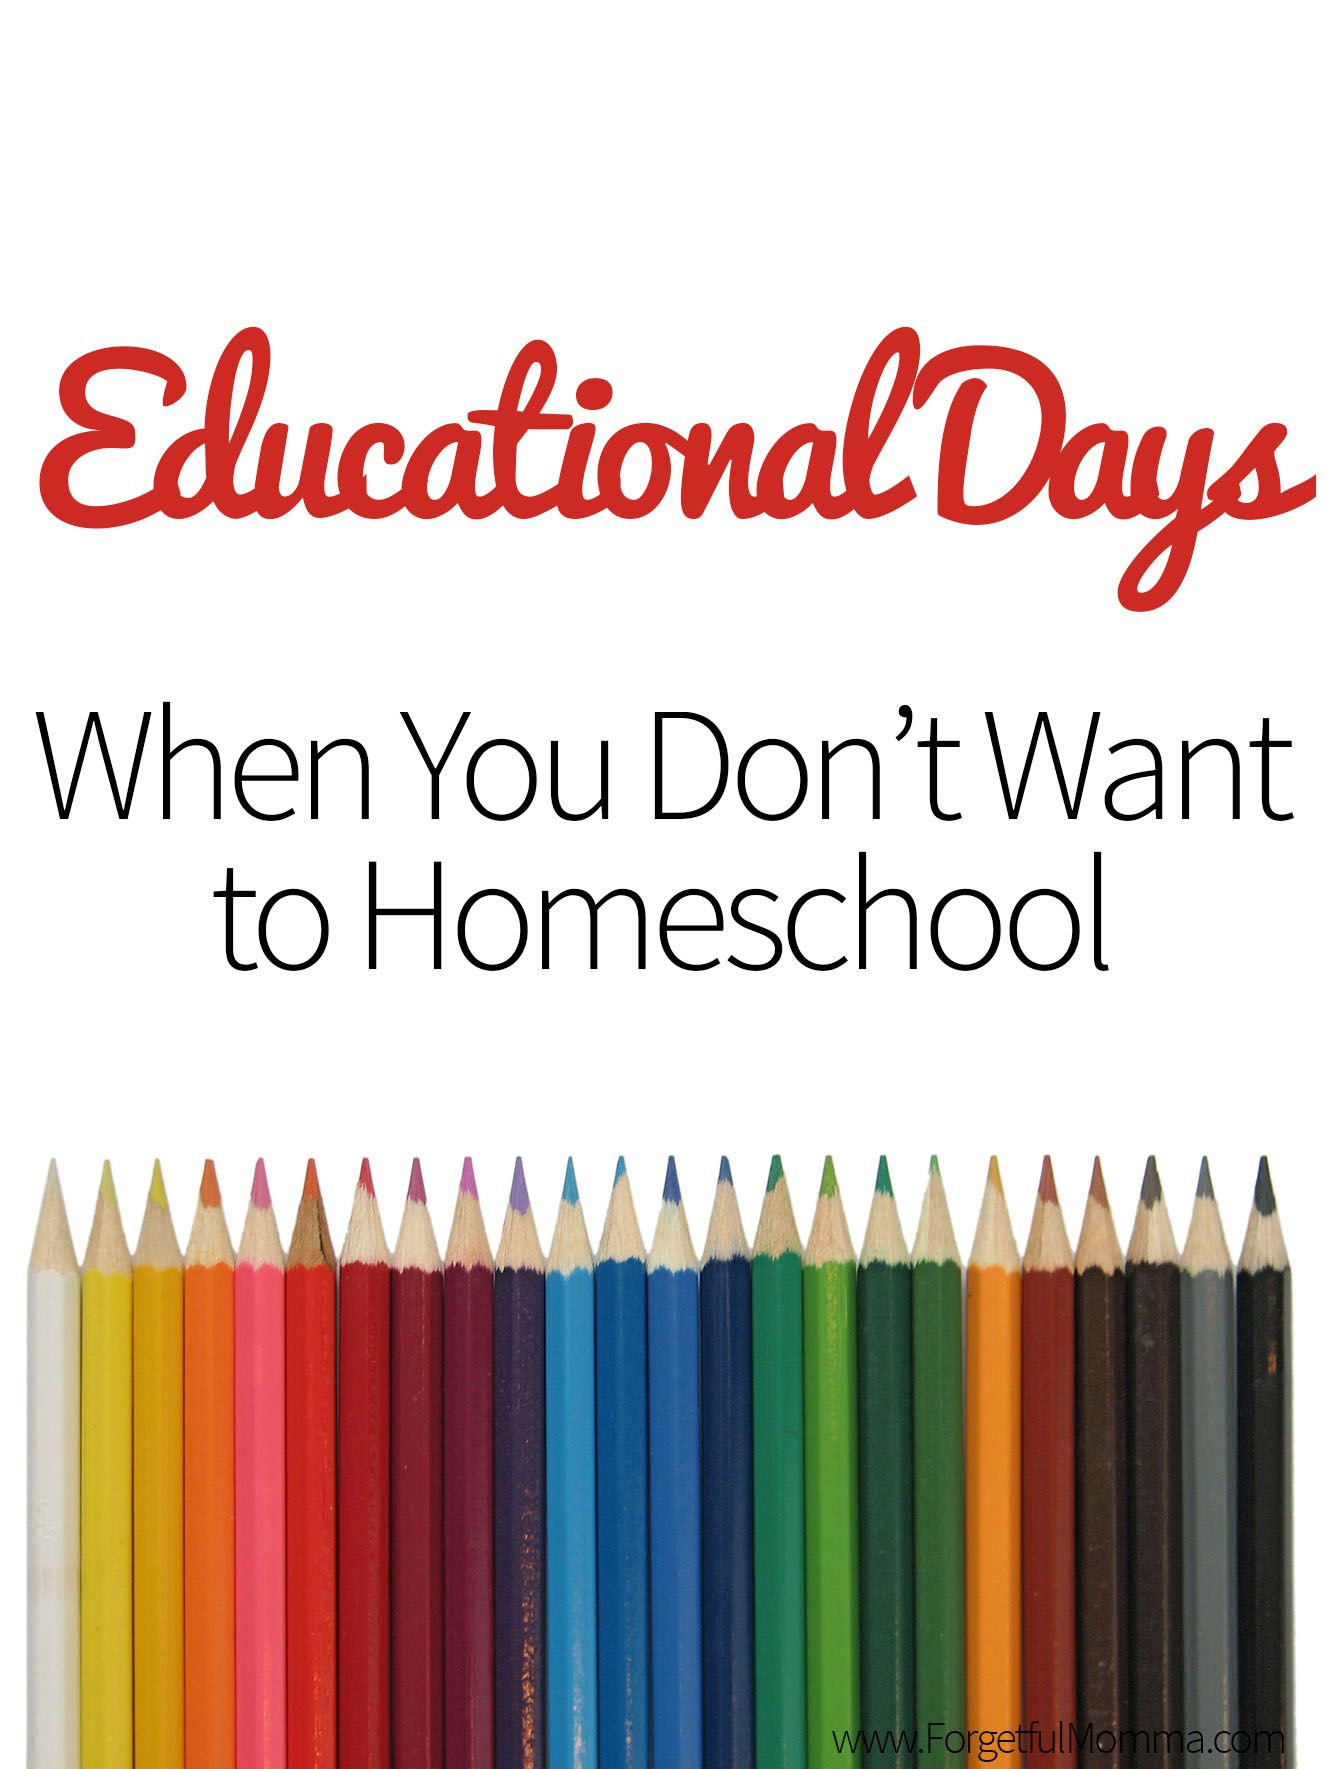 Educational Days When You Don't Want to Homeschool is part of Homeschool encouragement, Homeschool, Homeschool apps, Homeschool mom, Secular homeschool, Homeschool schedule - It's great to have ideas for those educational days when you feel like doing almost anything but school  Everyday is an opportunity for learning whether or not you have scheduled out what you'll be doing that day